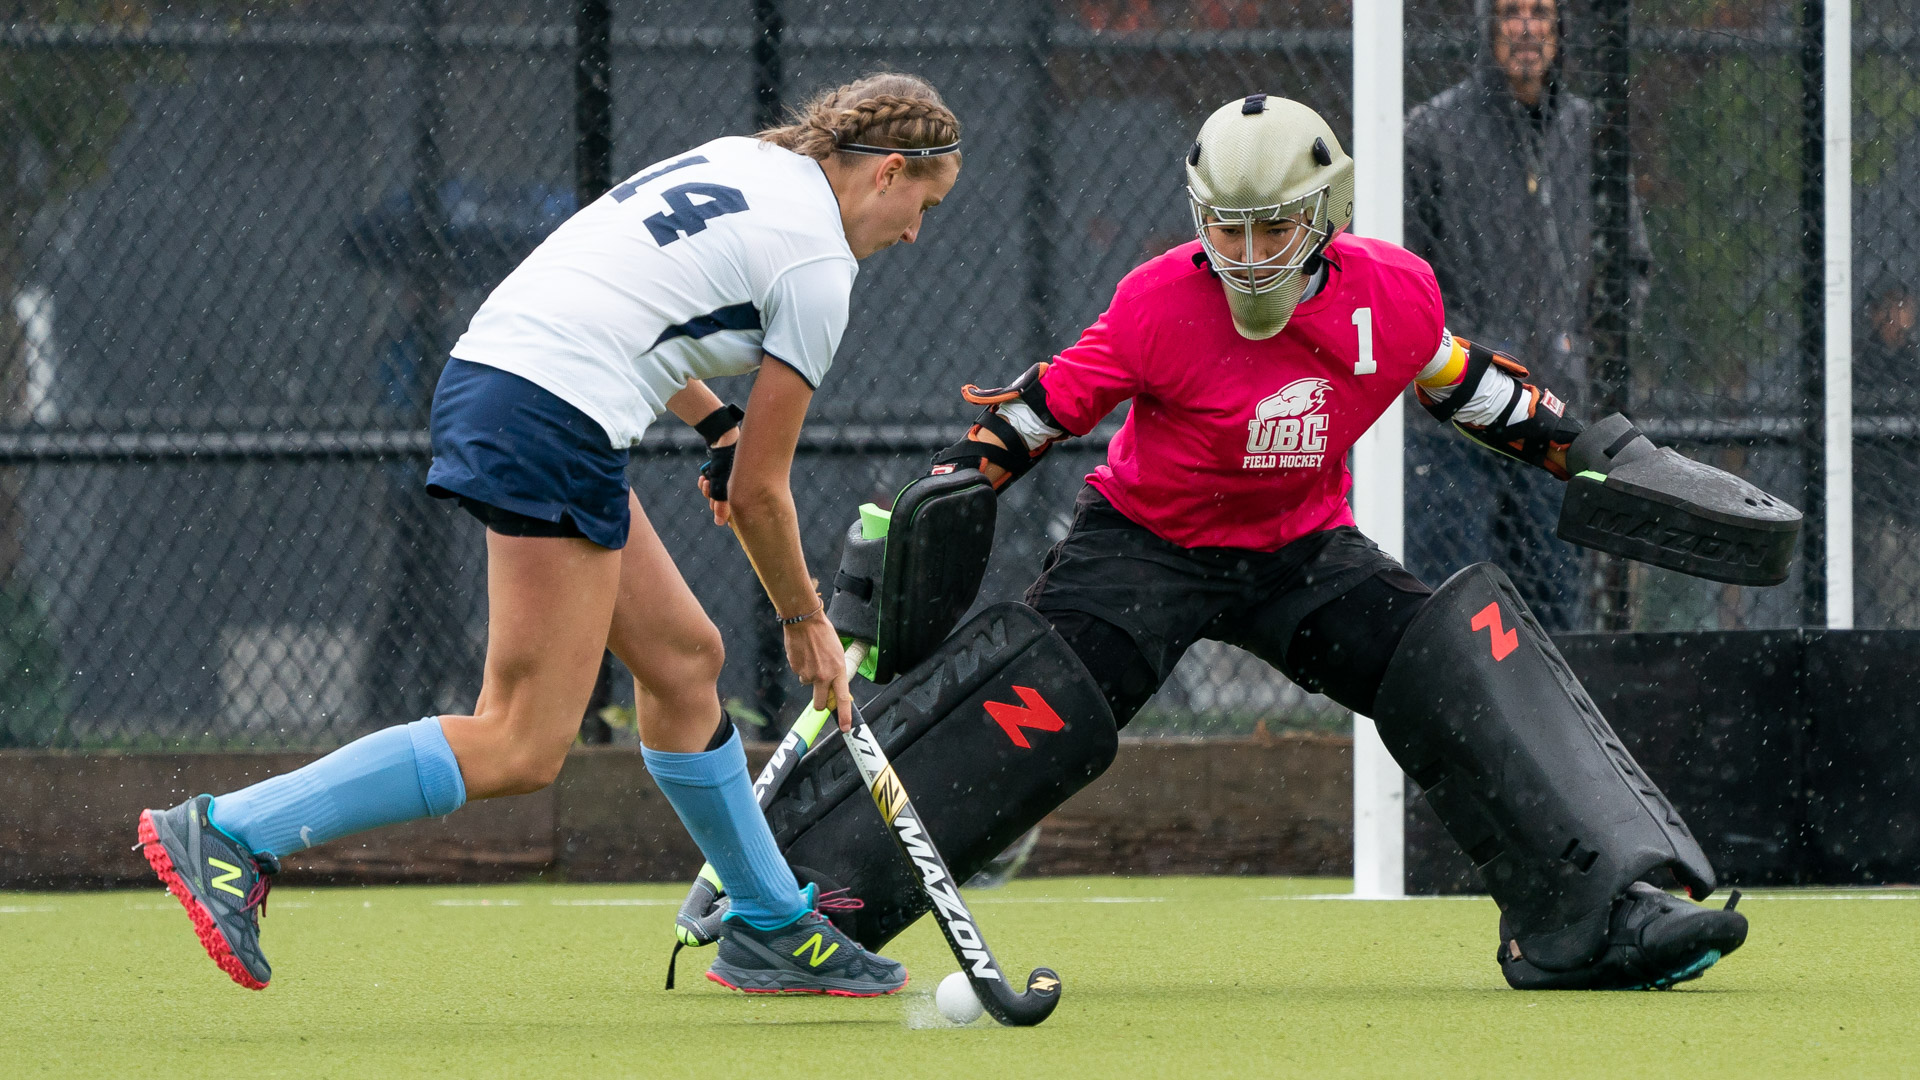 Veteran keeper Rowan Harris led the 'Birds to multiple U Sports National Championships